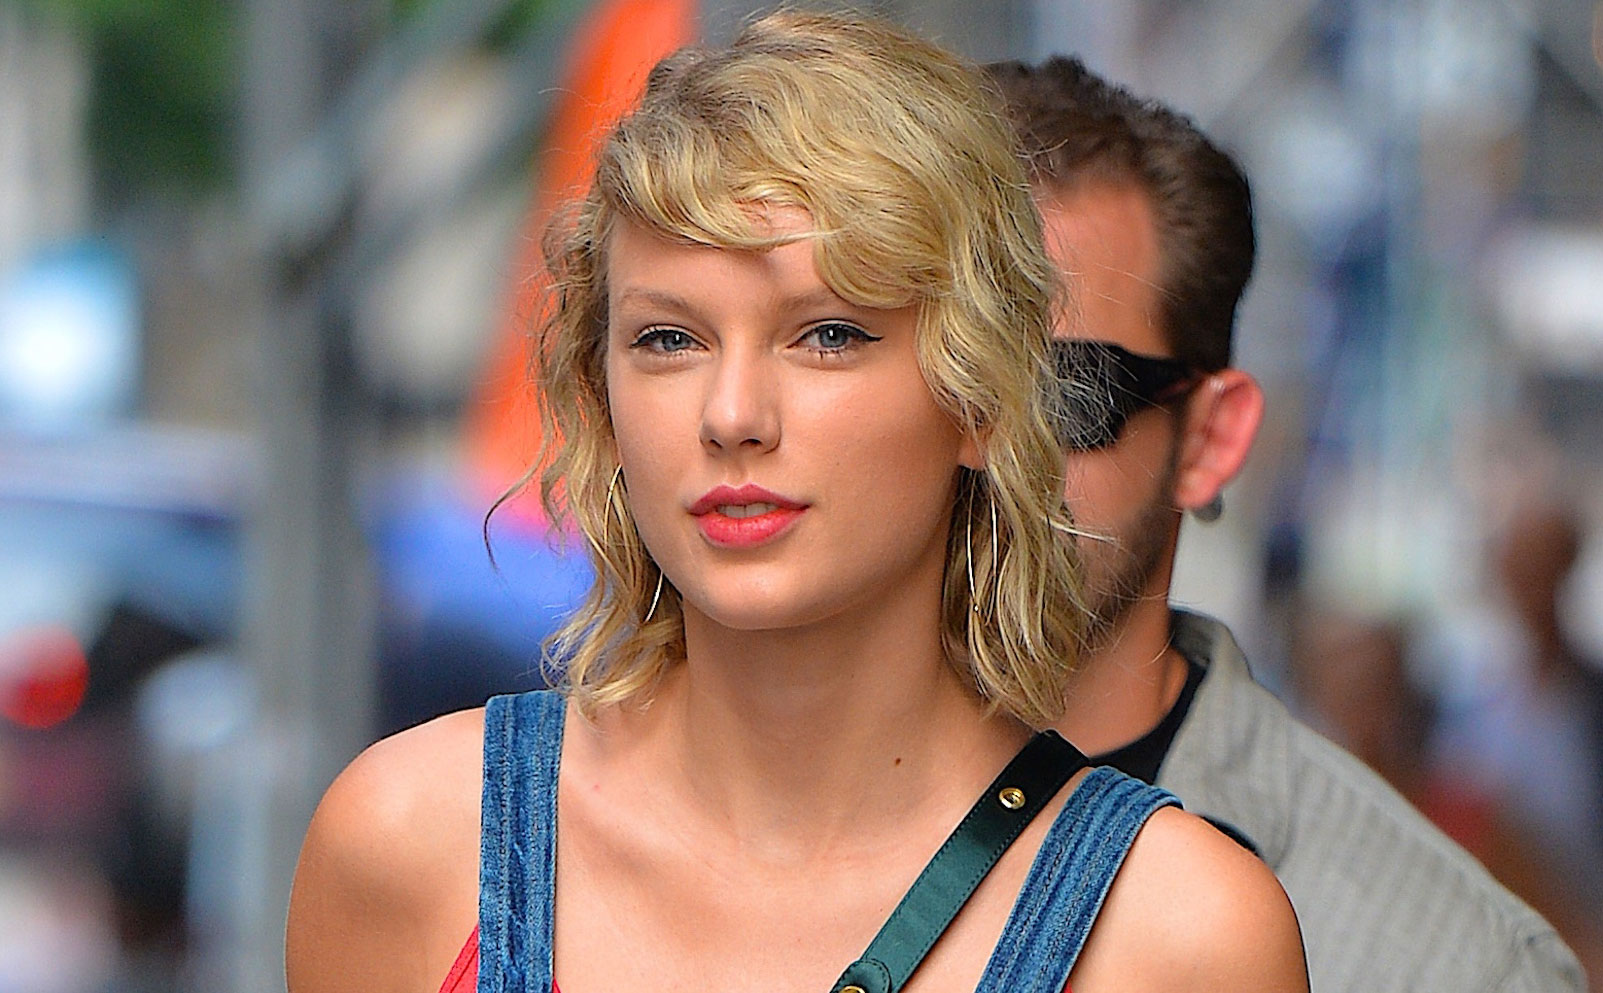 PSA: Taylor Swift dyed her hair again, and it's giving us blonde-envy